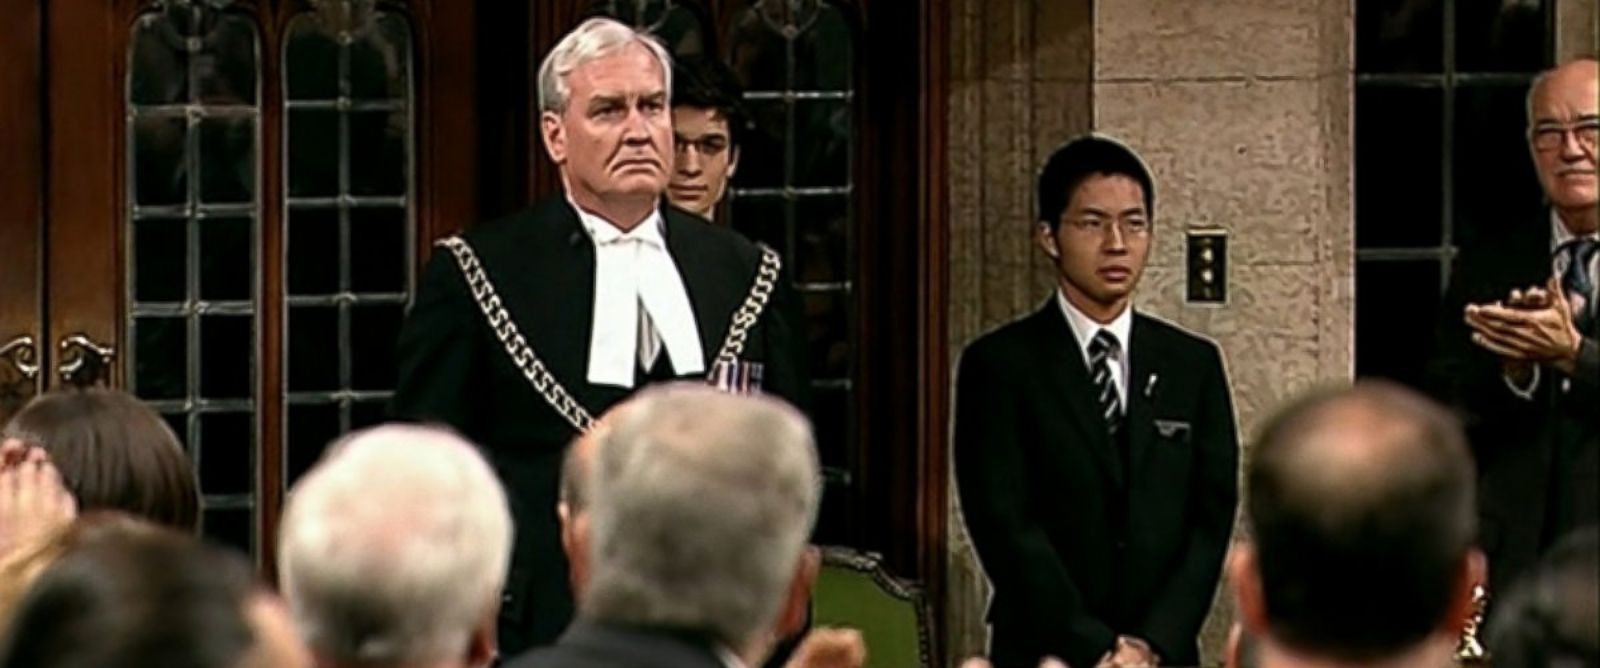 PHOTO: Canadian Parliament reopened this morning and Sergeant-at-Arms Kevin Vickers, who has been held up as a hero after shooting the gunman from Wednesday's attack, was welcomed into the building with lengthy applause and a standing ovation.